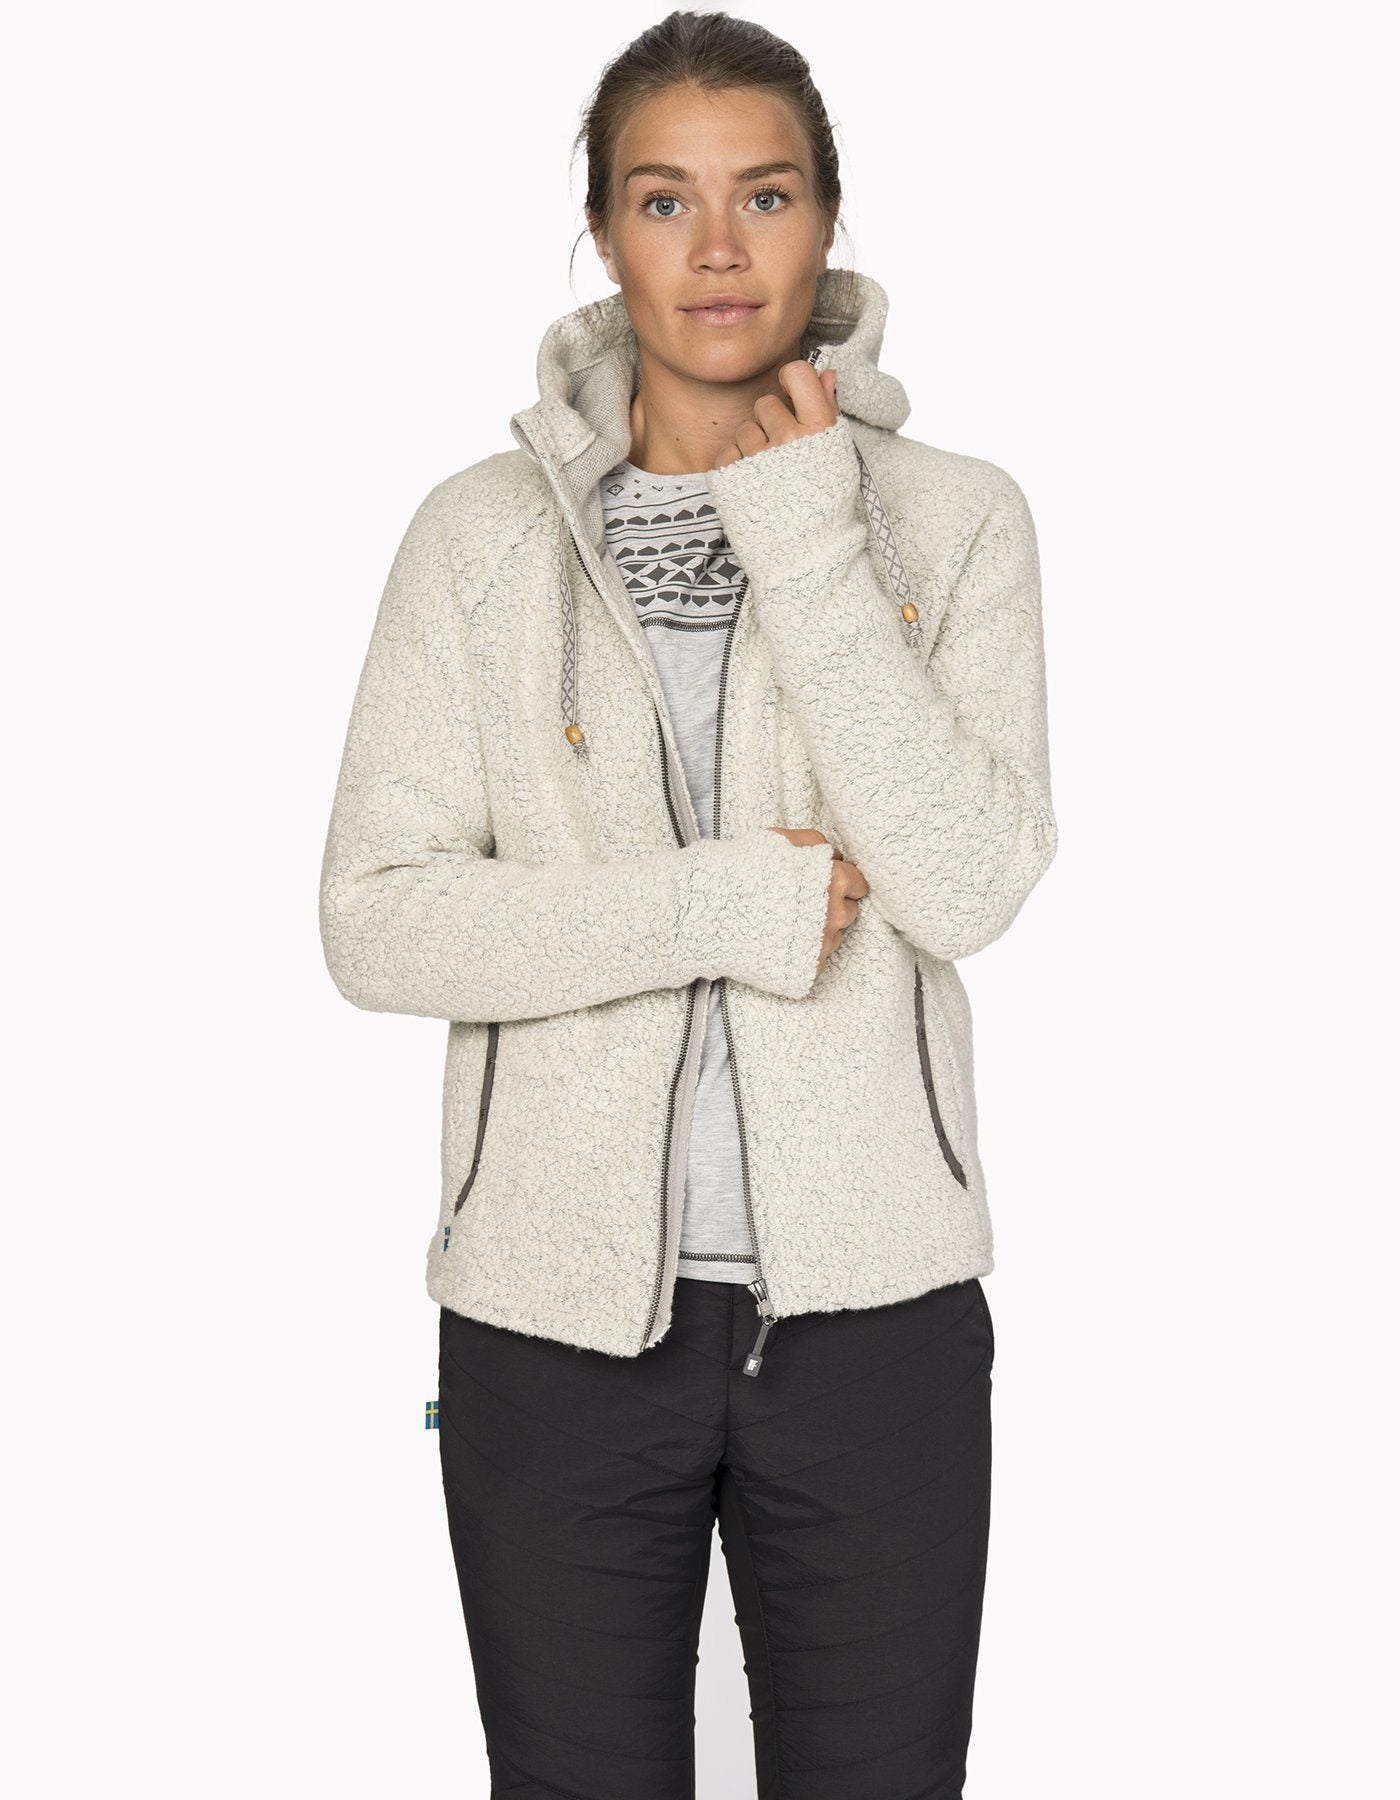 Varg - Malö wool hoodie - Off White - Recycled Wool - Weekendbee - sustainable sportswear